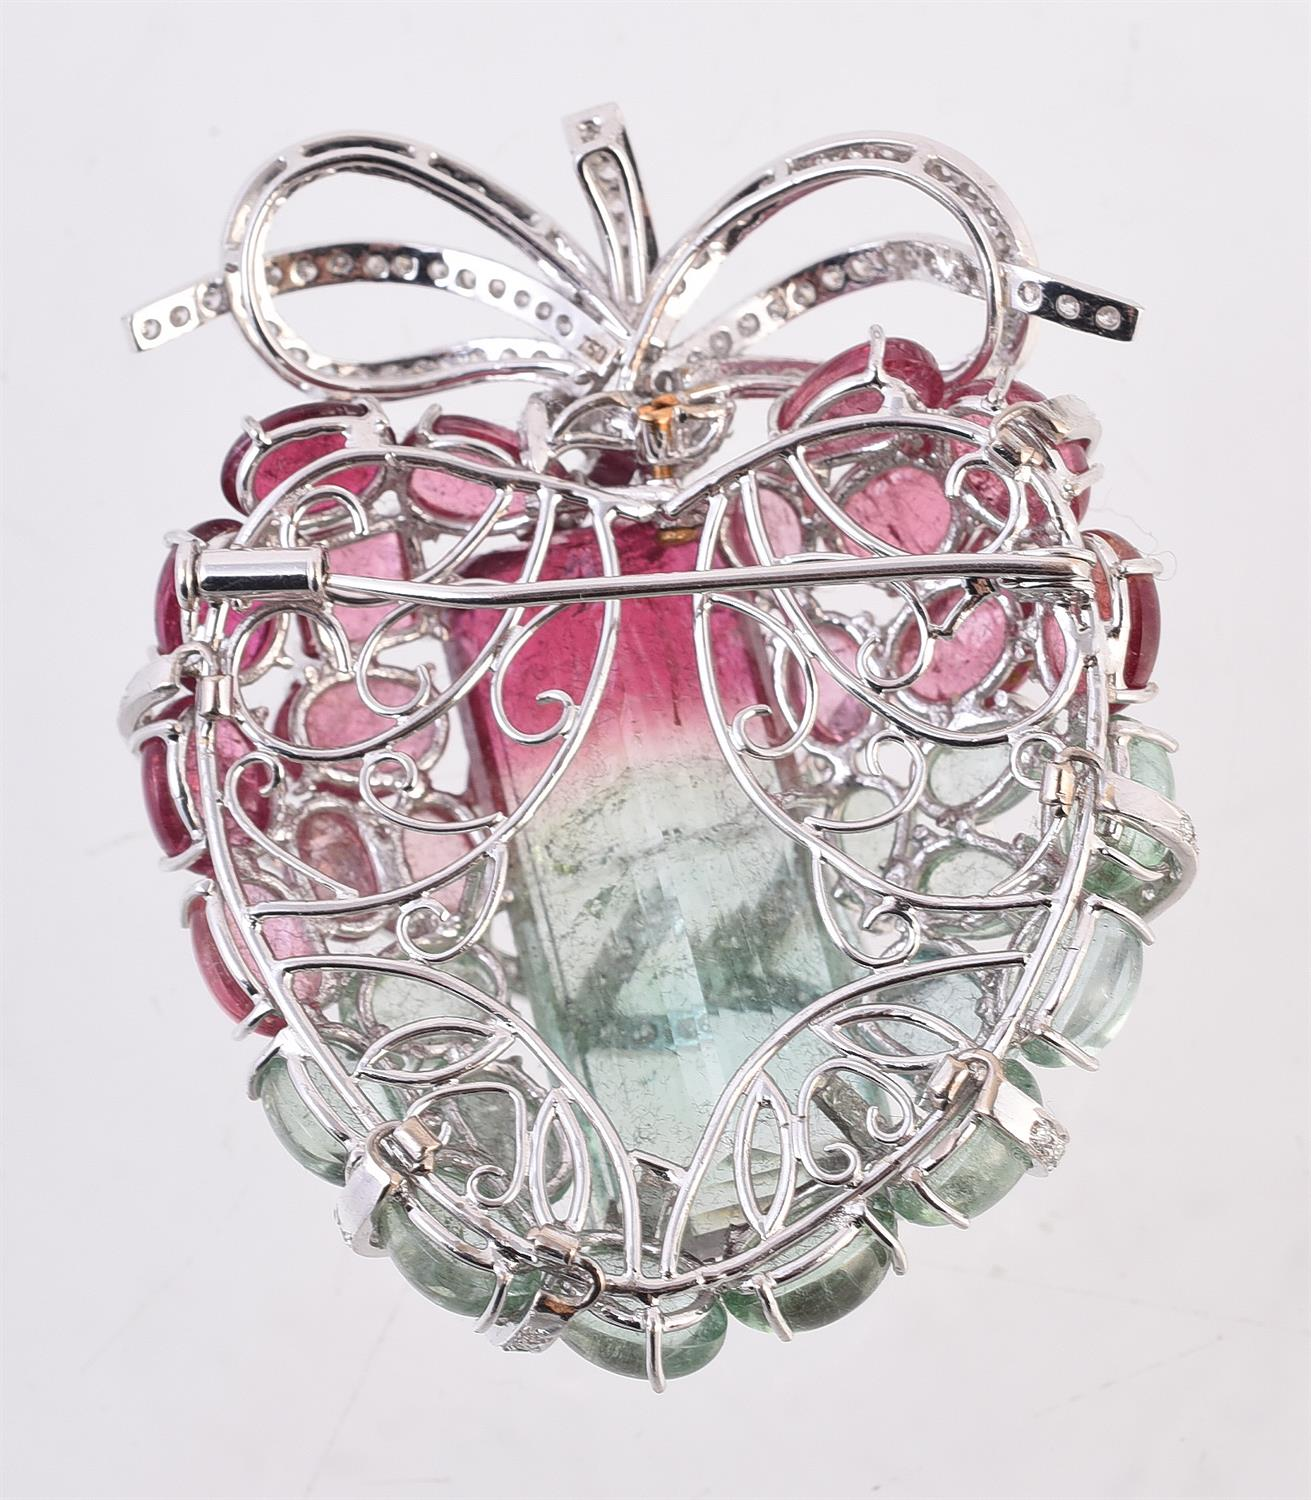 A diamond and tourmaline wrapped heart brooch - Image 2 of 2